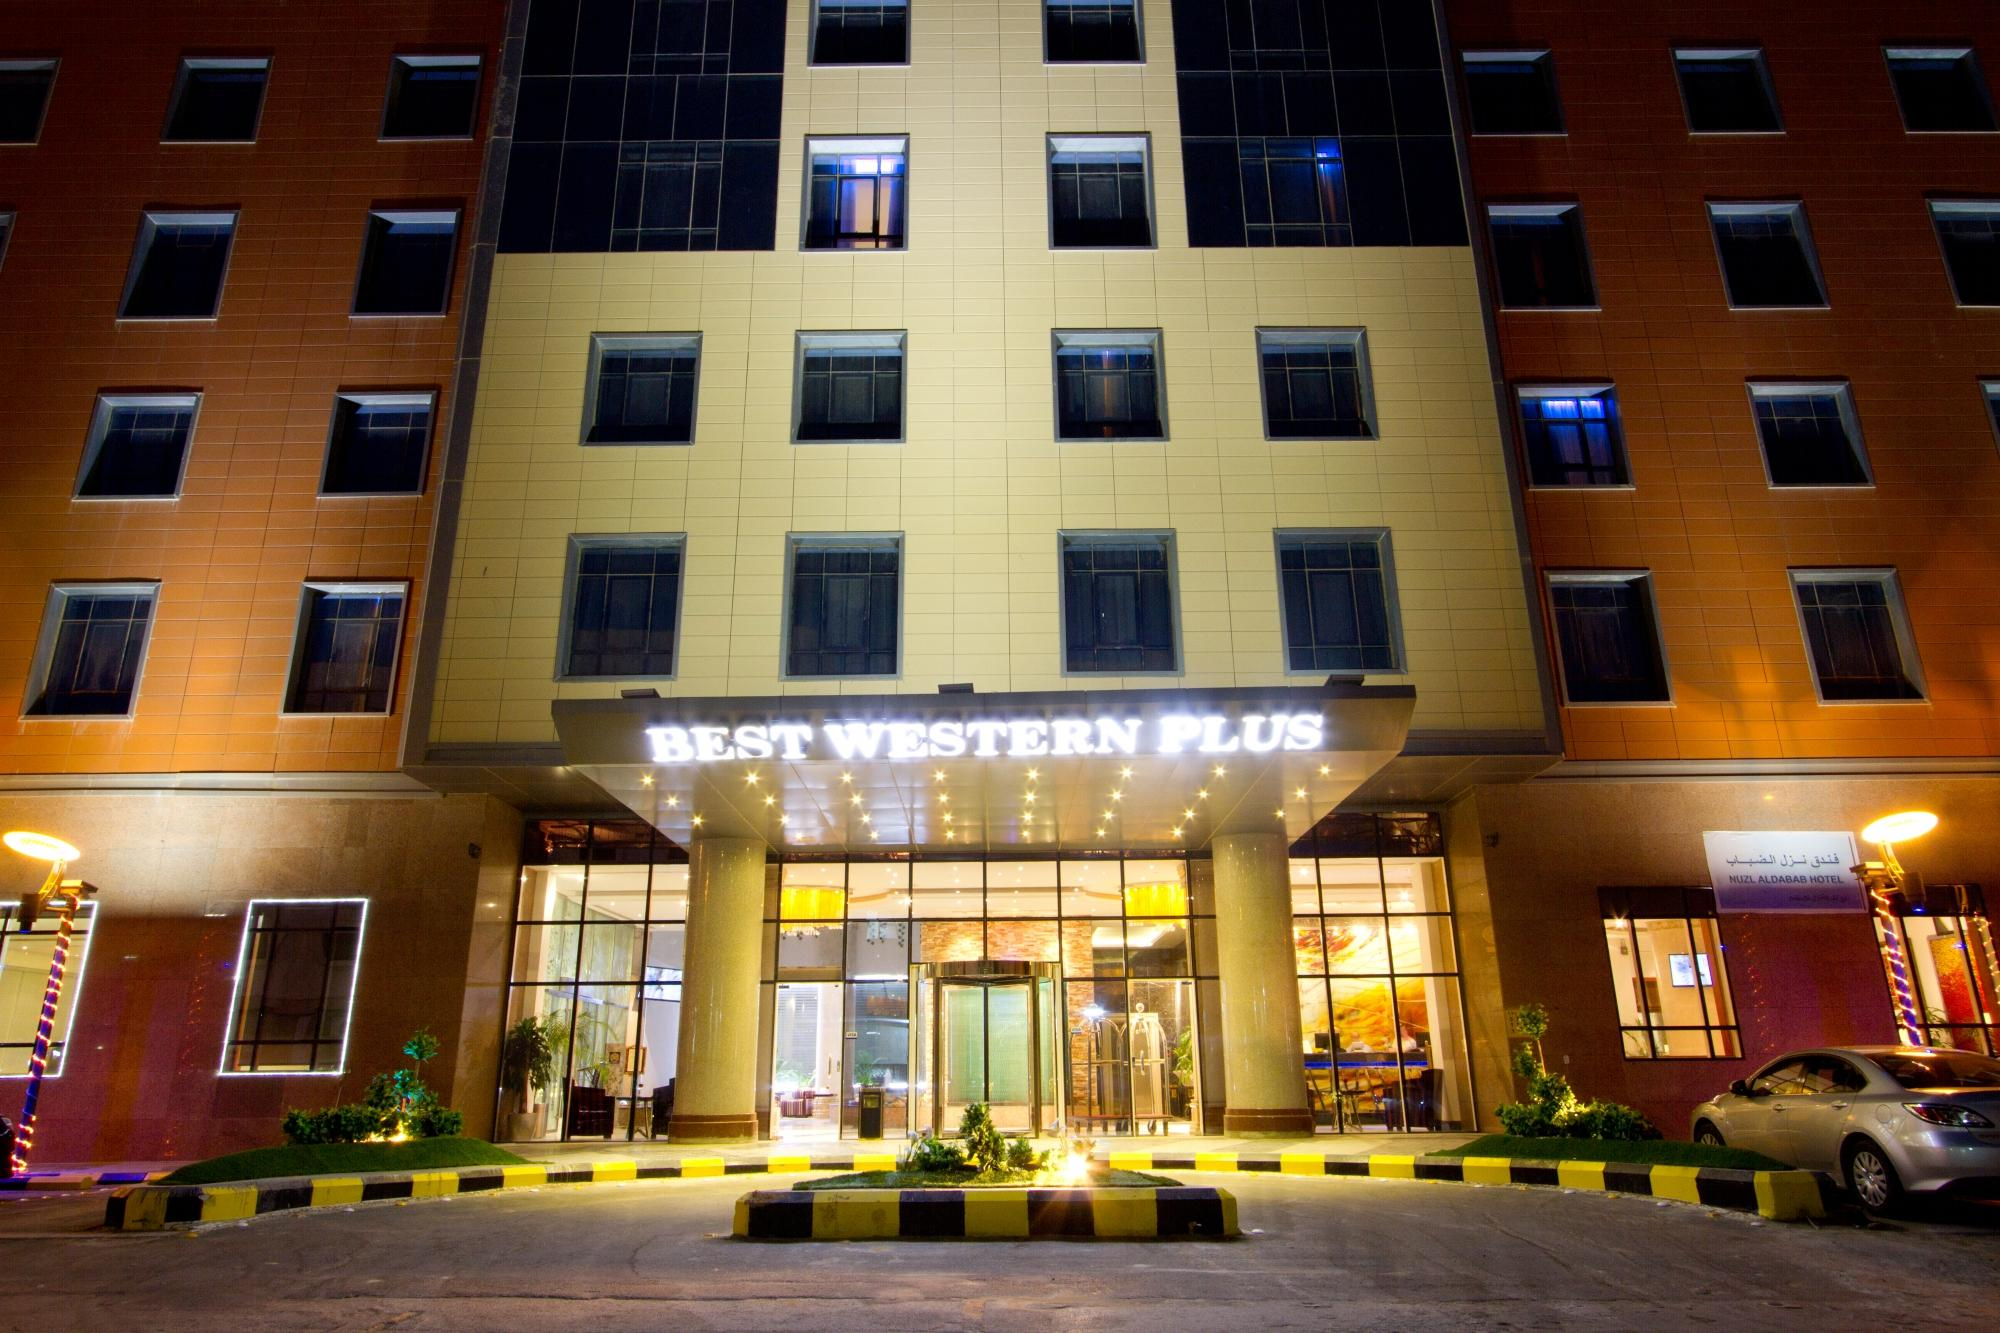 BEST WESTERN PLUS Riyadh Hotel